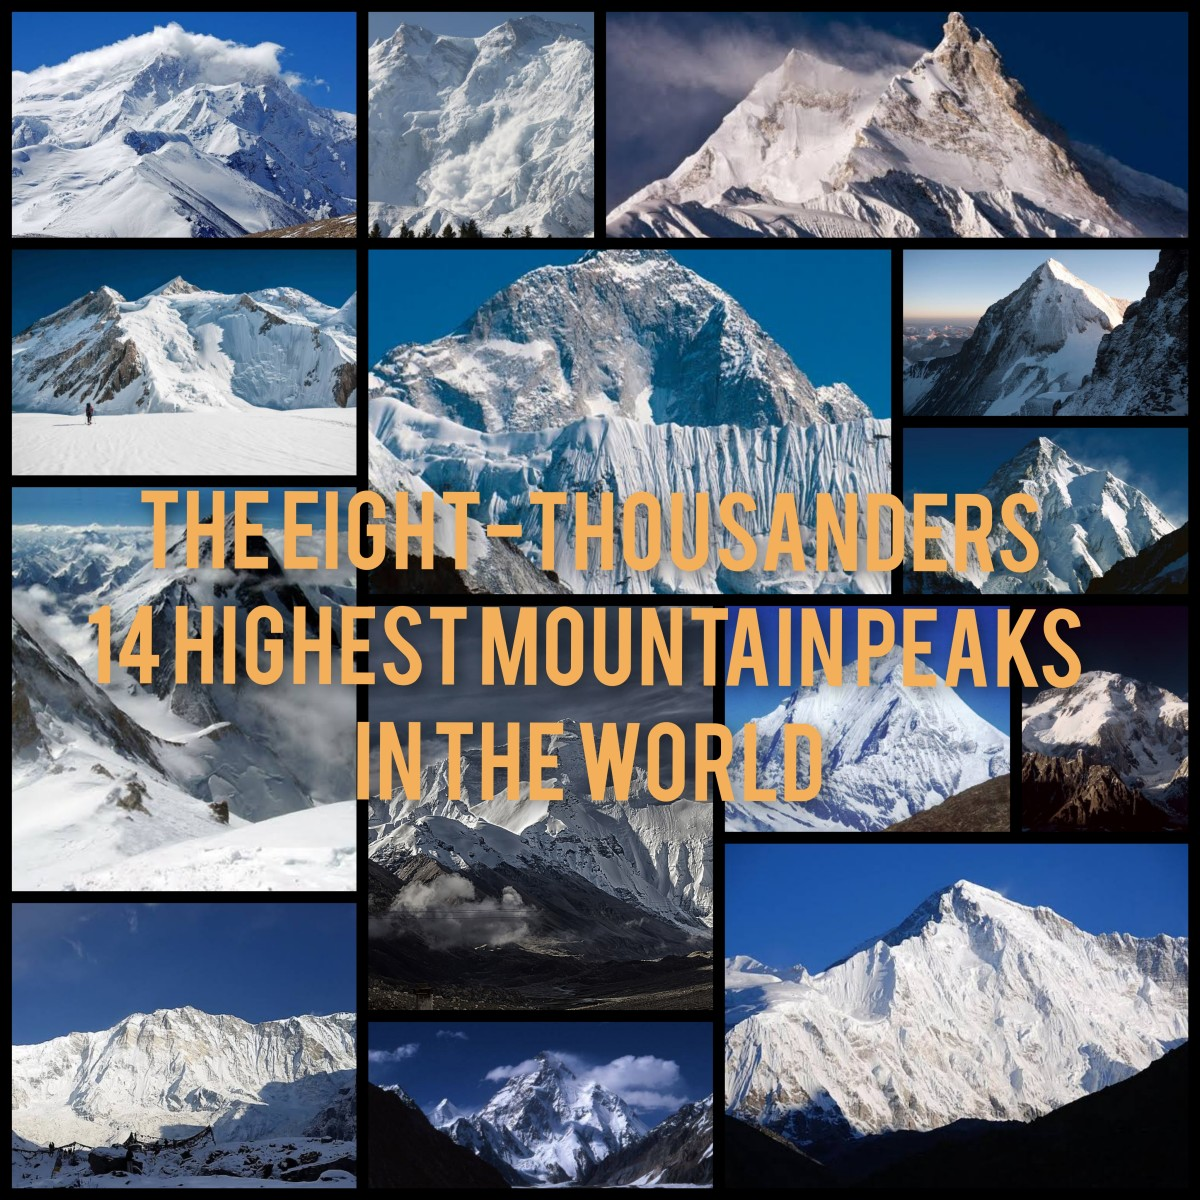 The Eight-Thousanders, 14 Highest Mountain Peaks in the world.